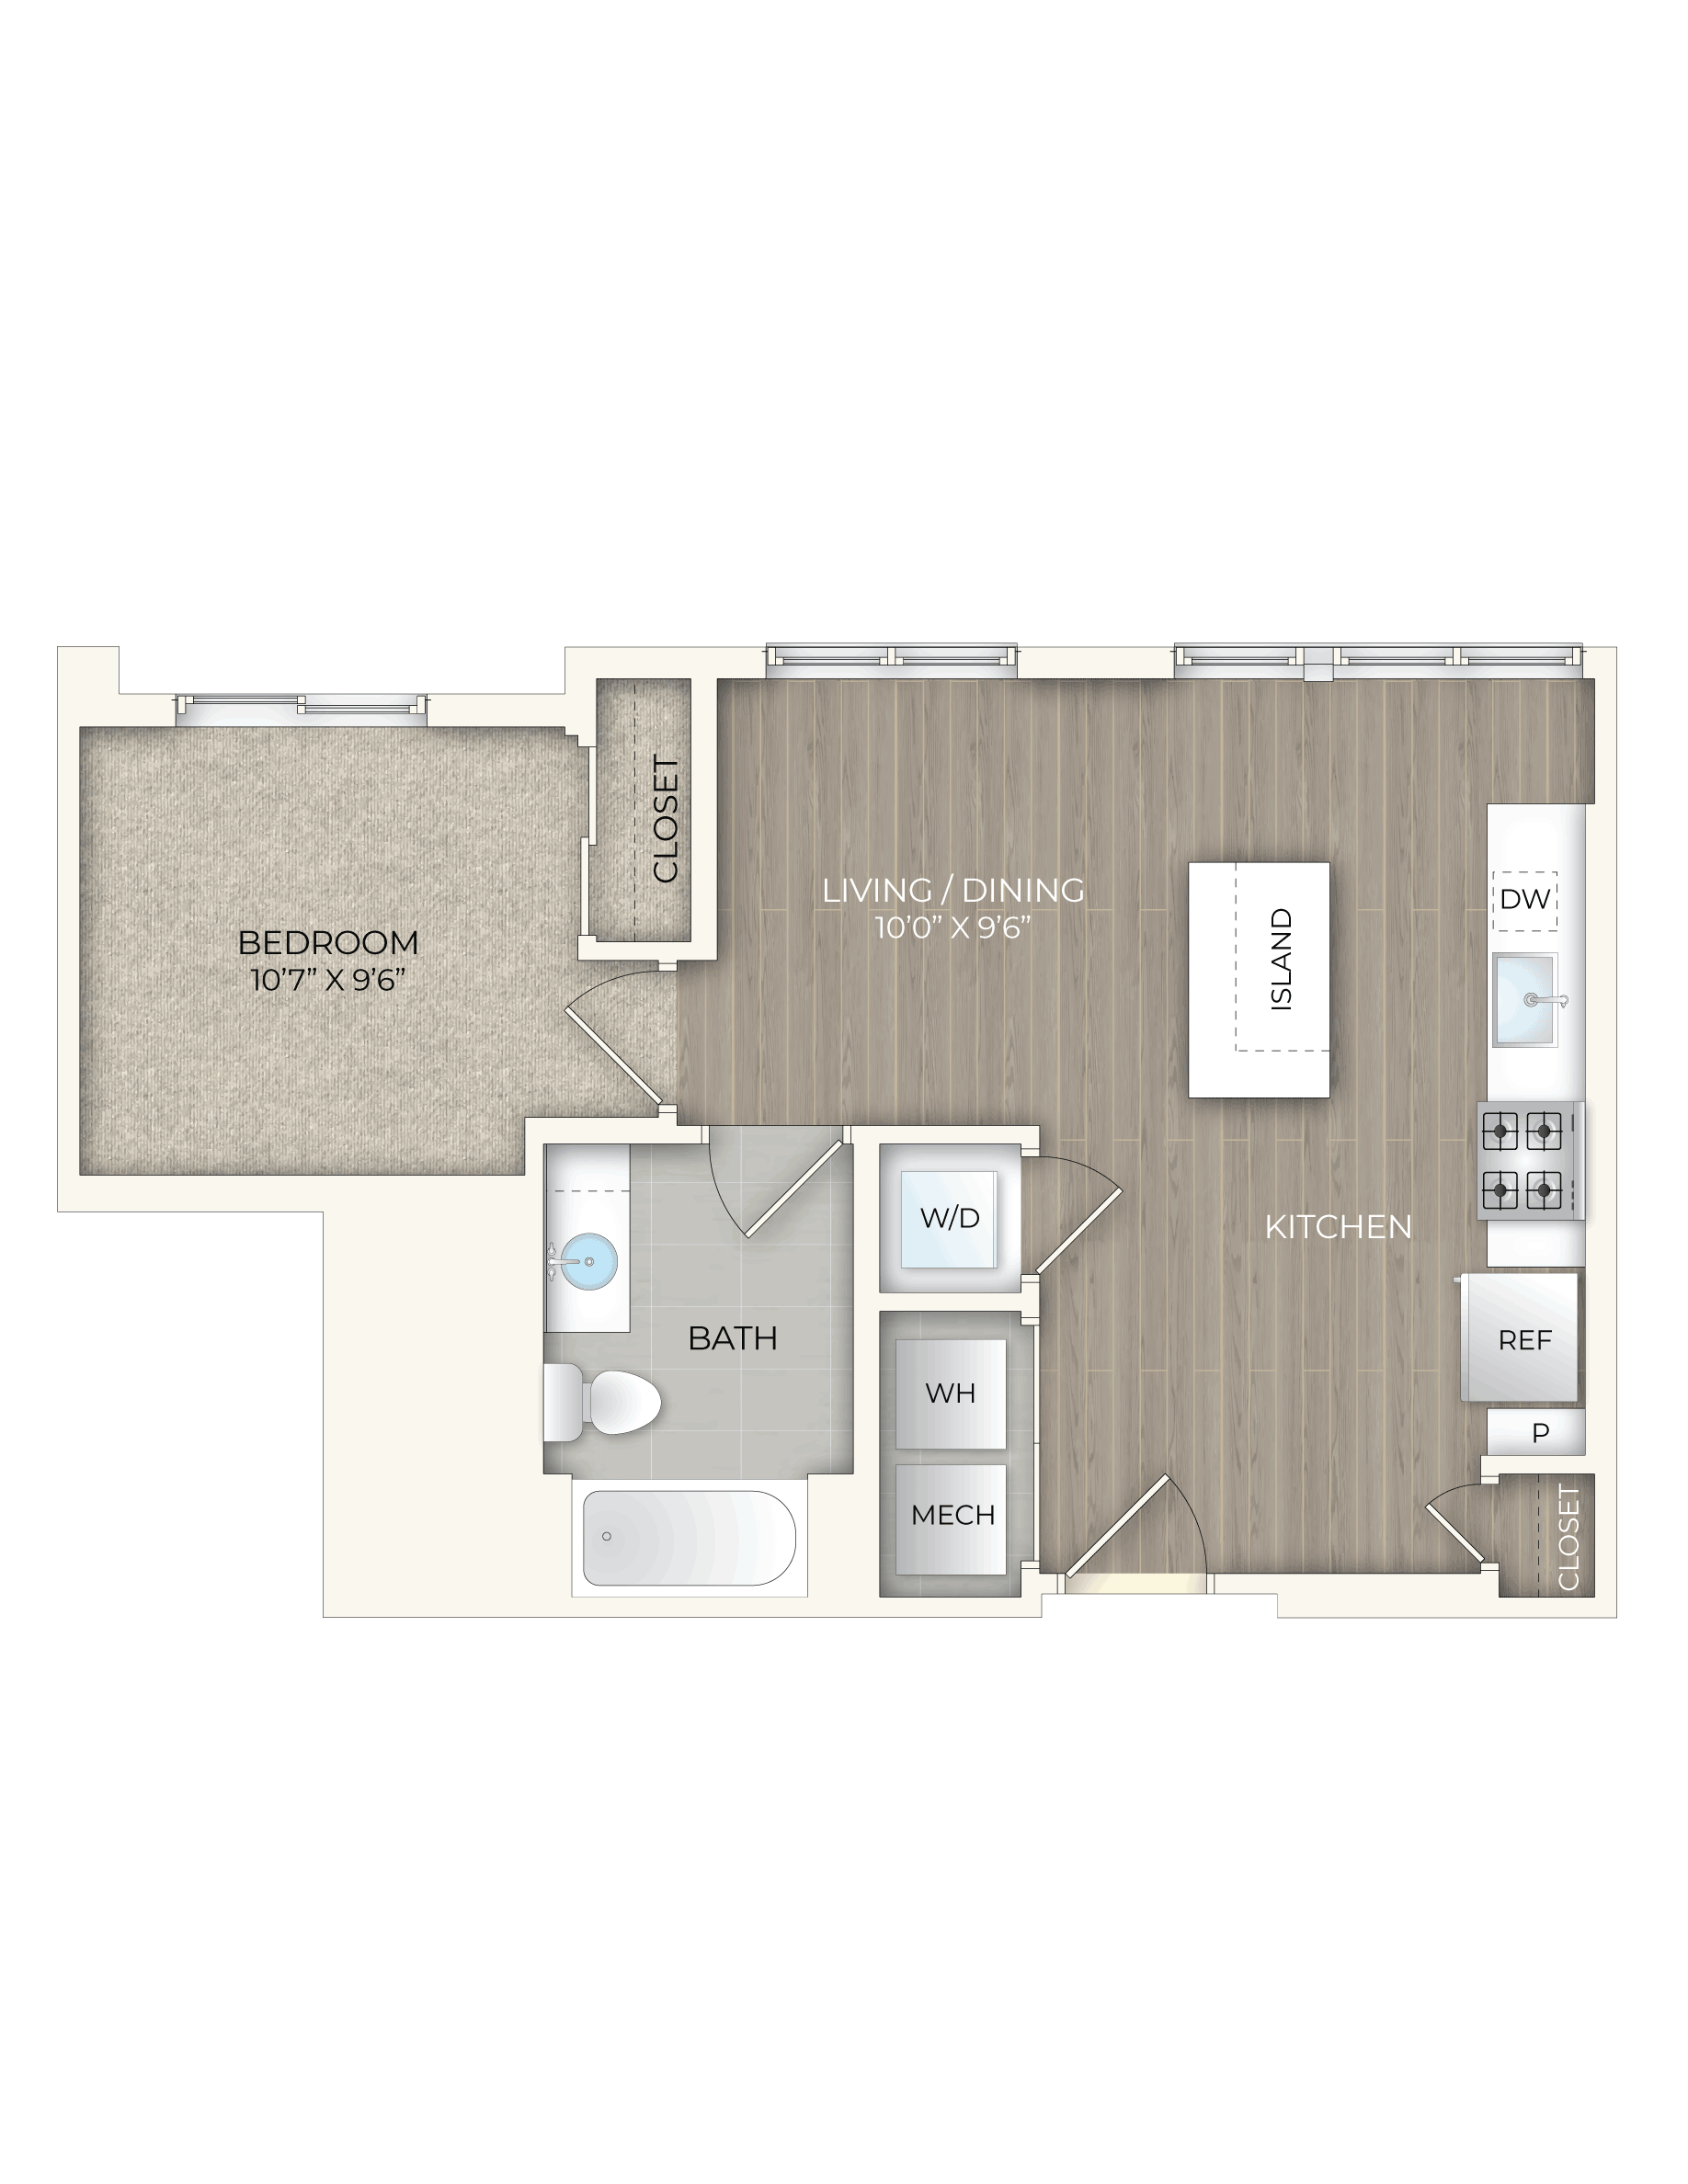 floor plan image of apartment 329S